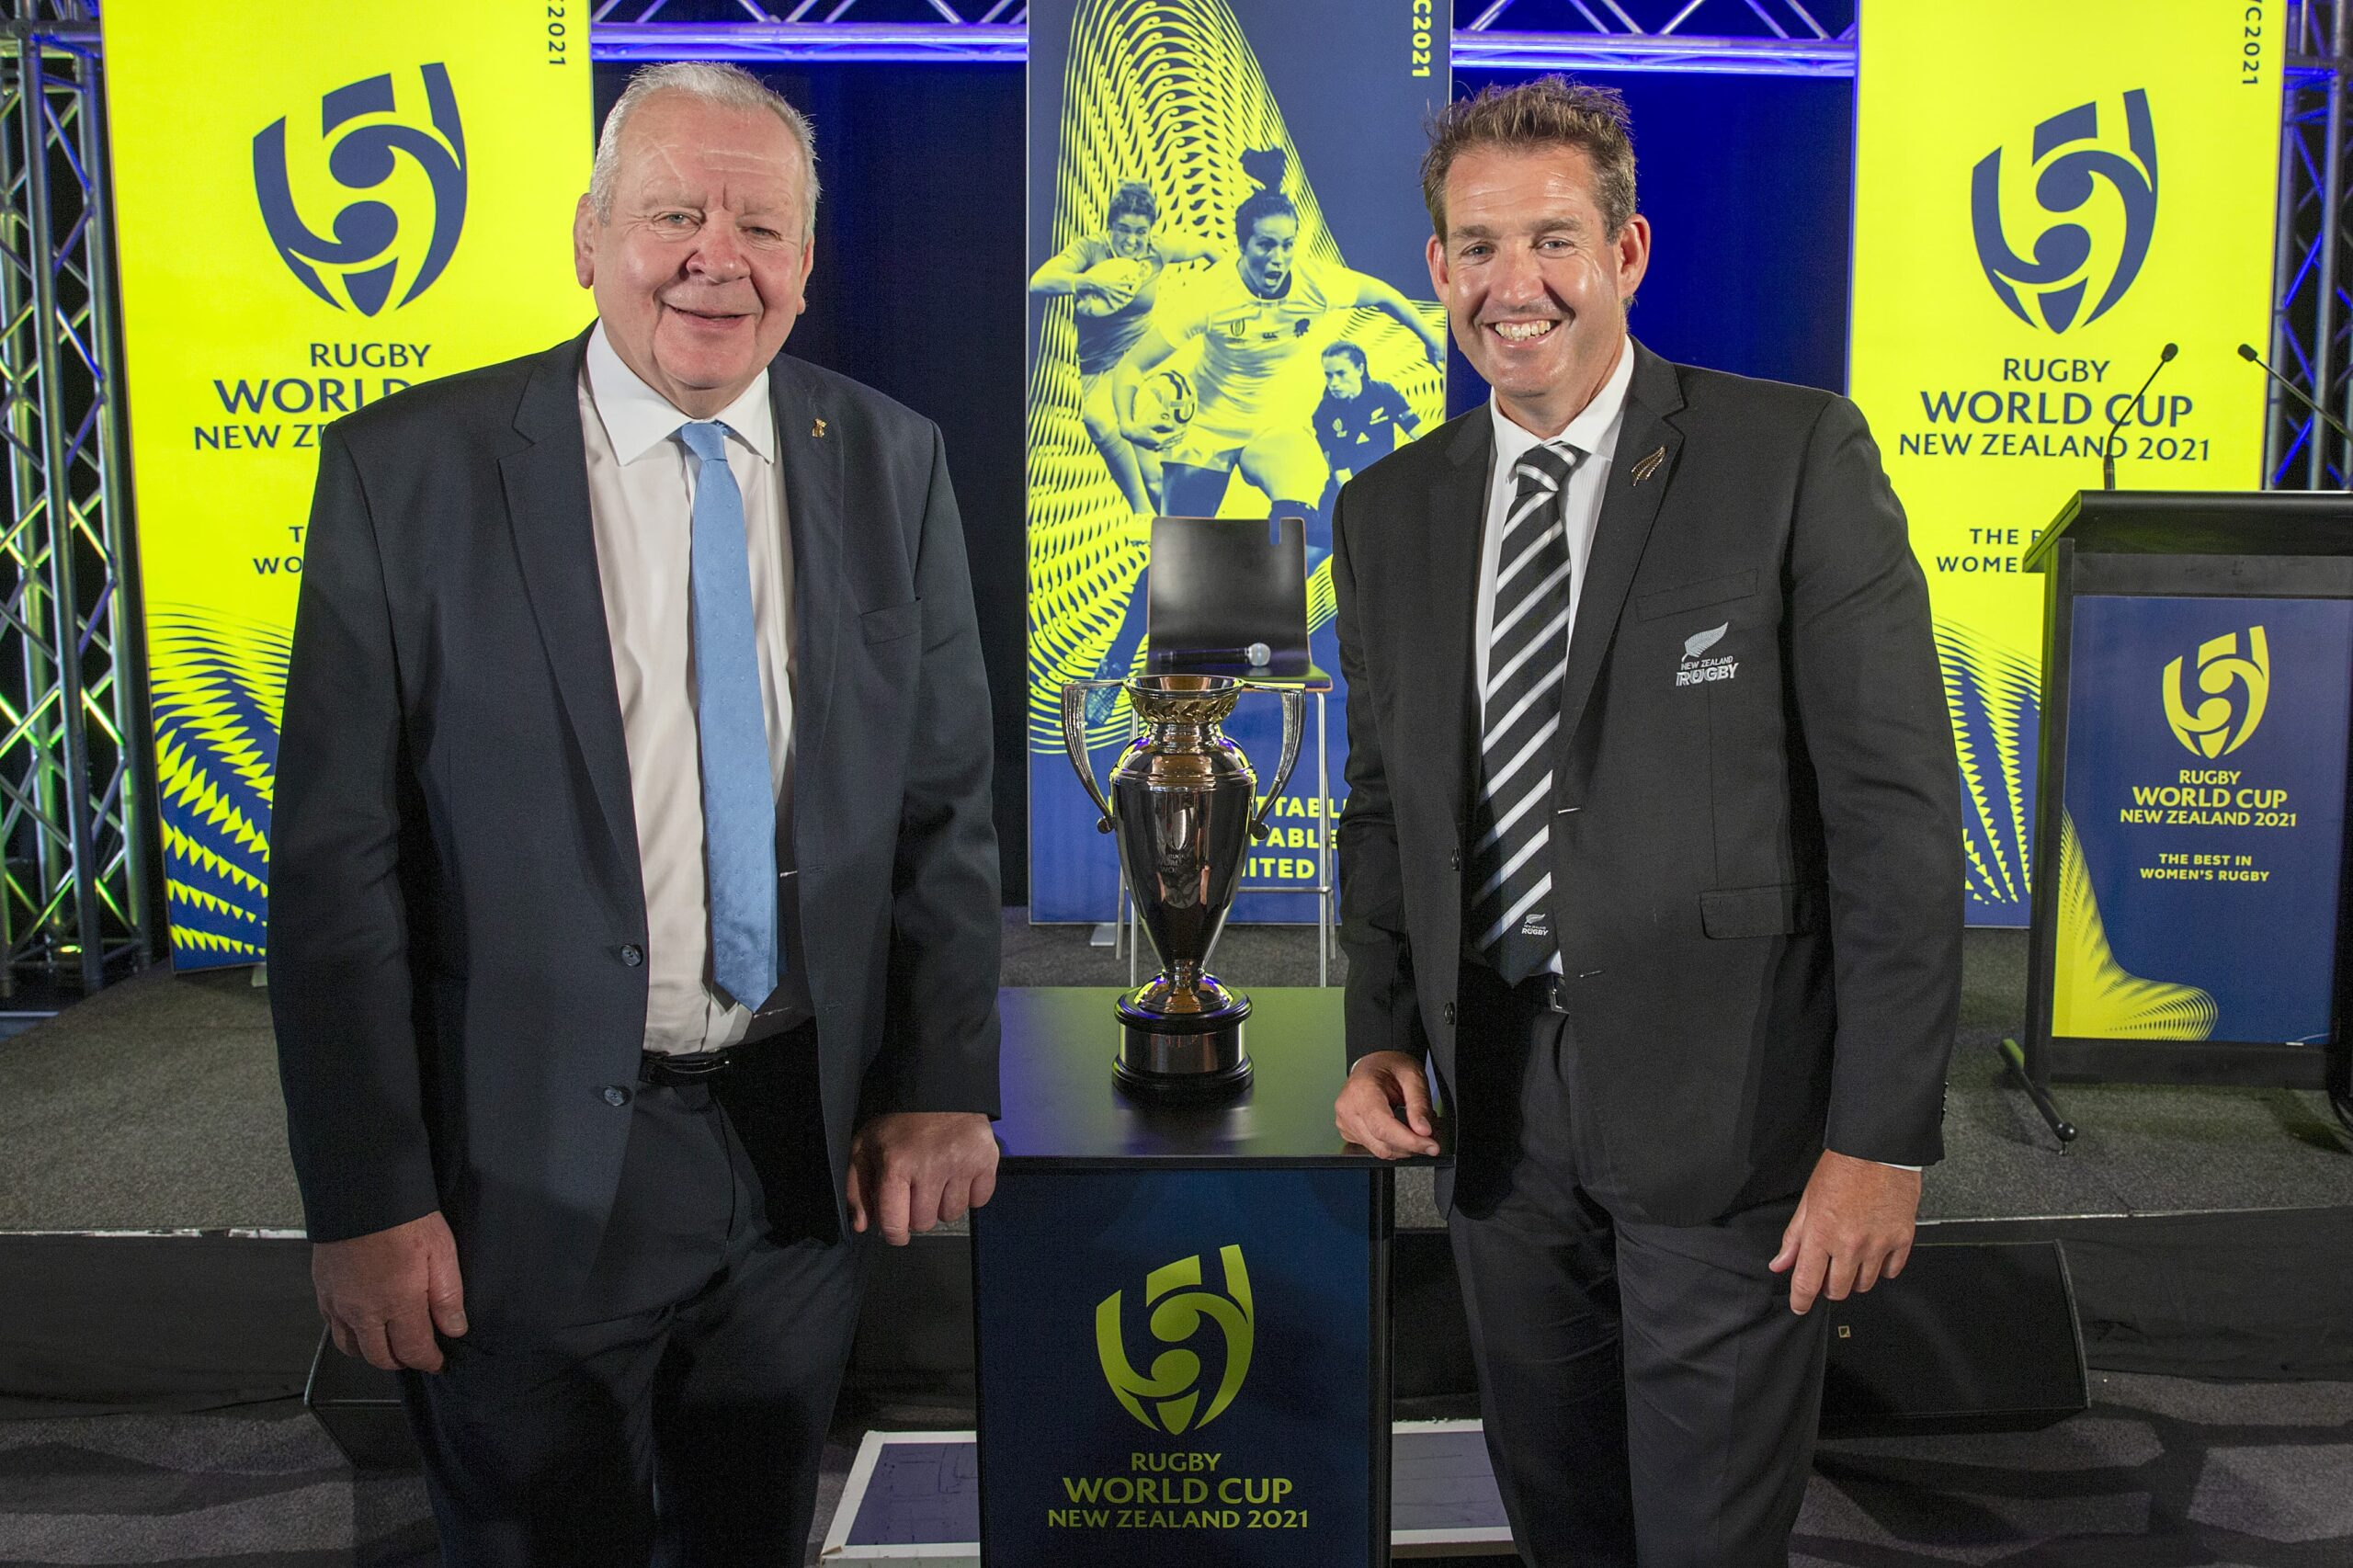 world cup 2021 draw in auckland